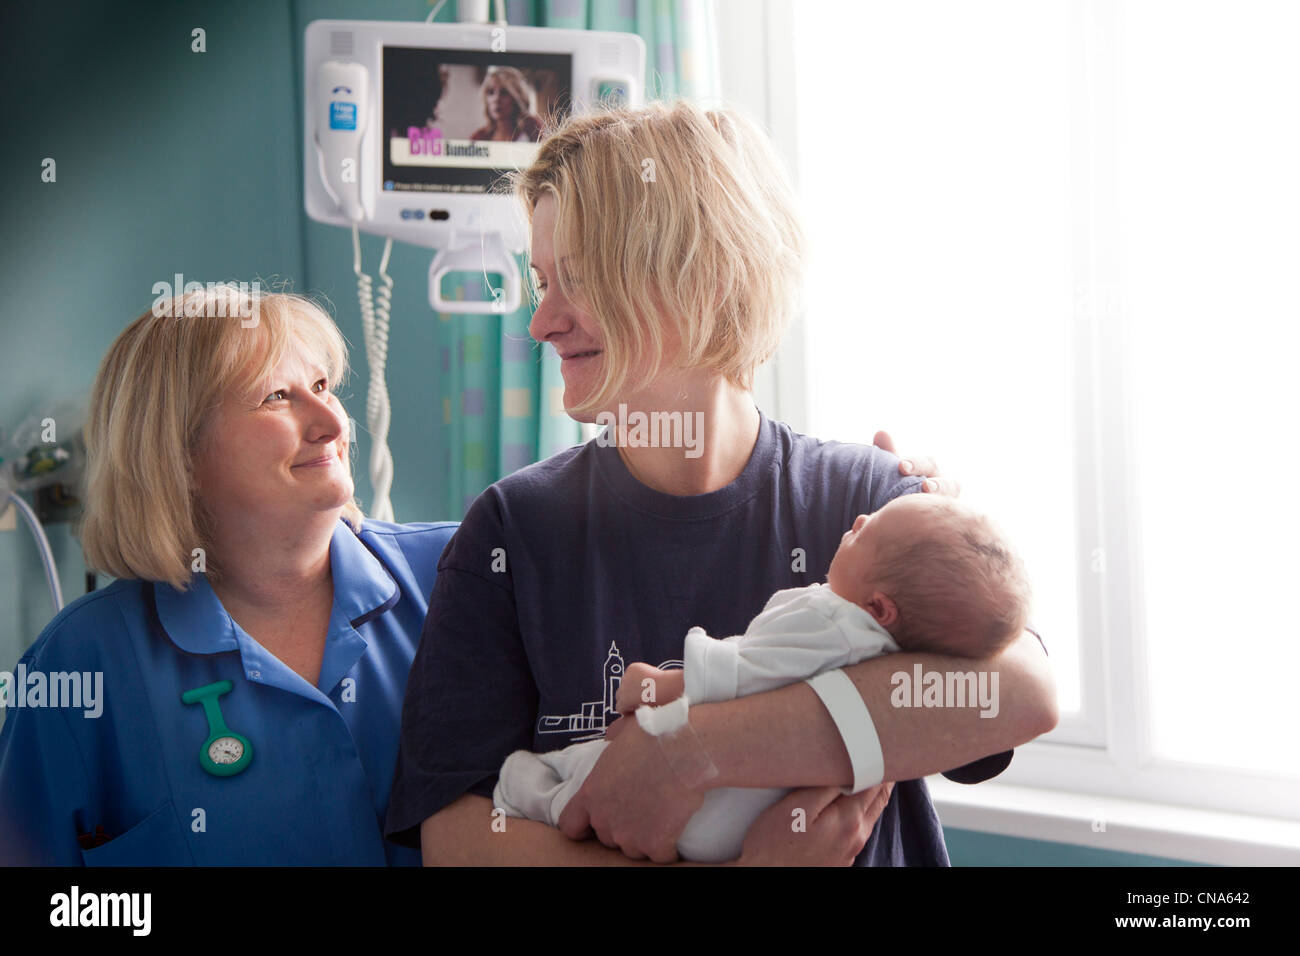 Editorial Staff Stock Photos & Editorial Staff Stock Images - Alamy